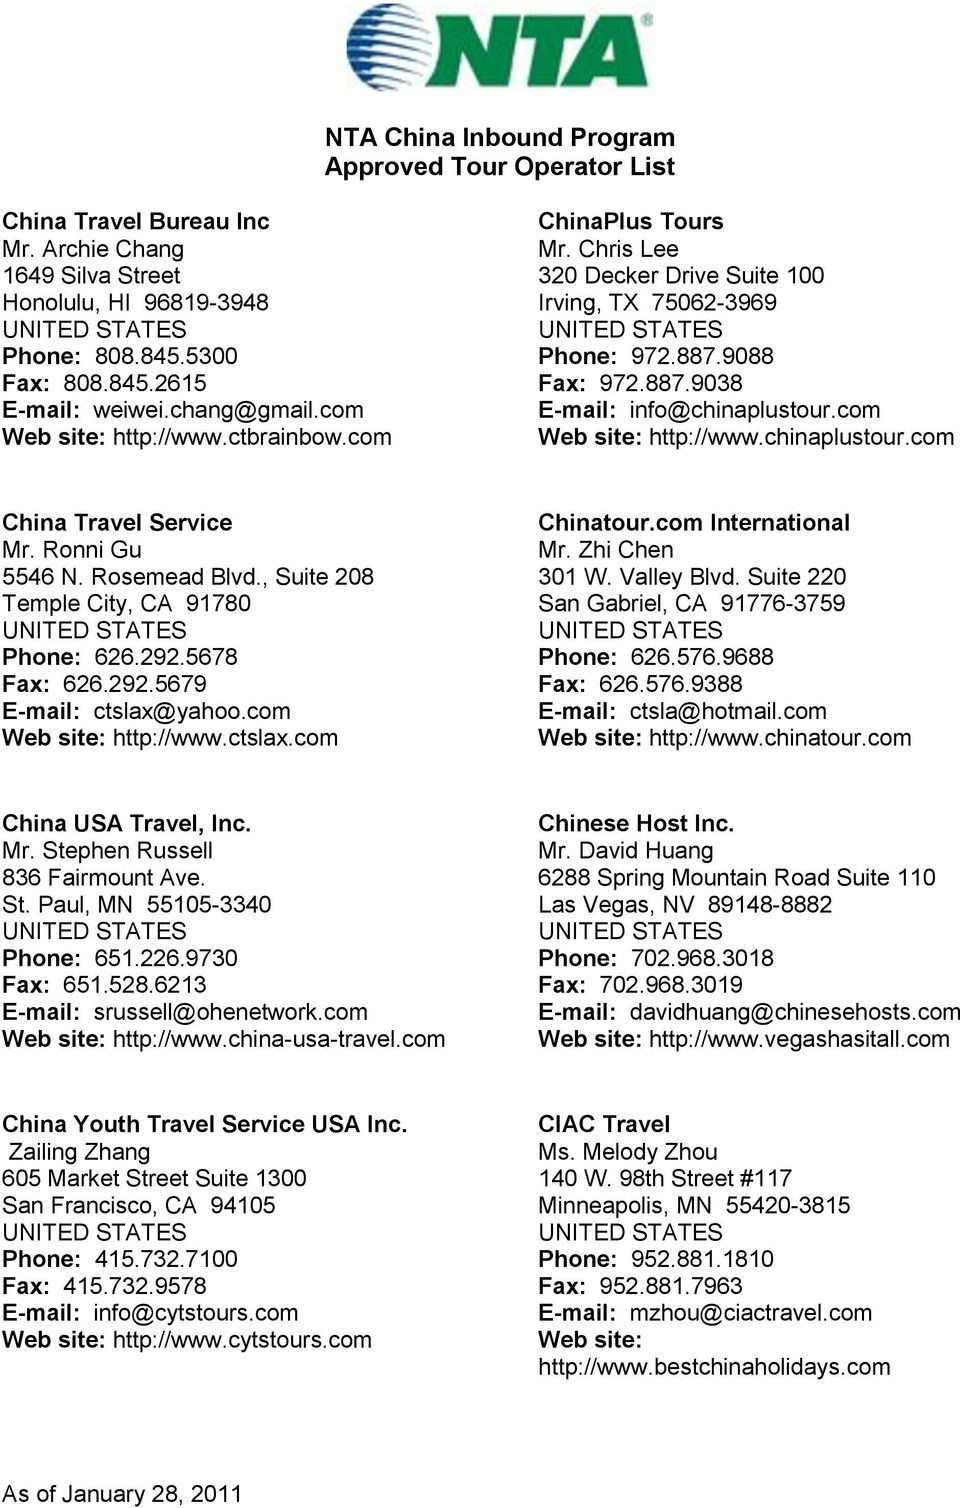 NTA China Inbound Program Approved Tour Operator List - PDF